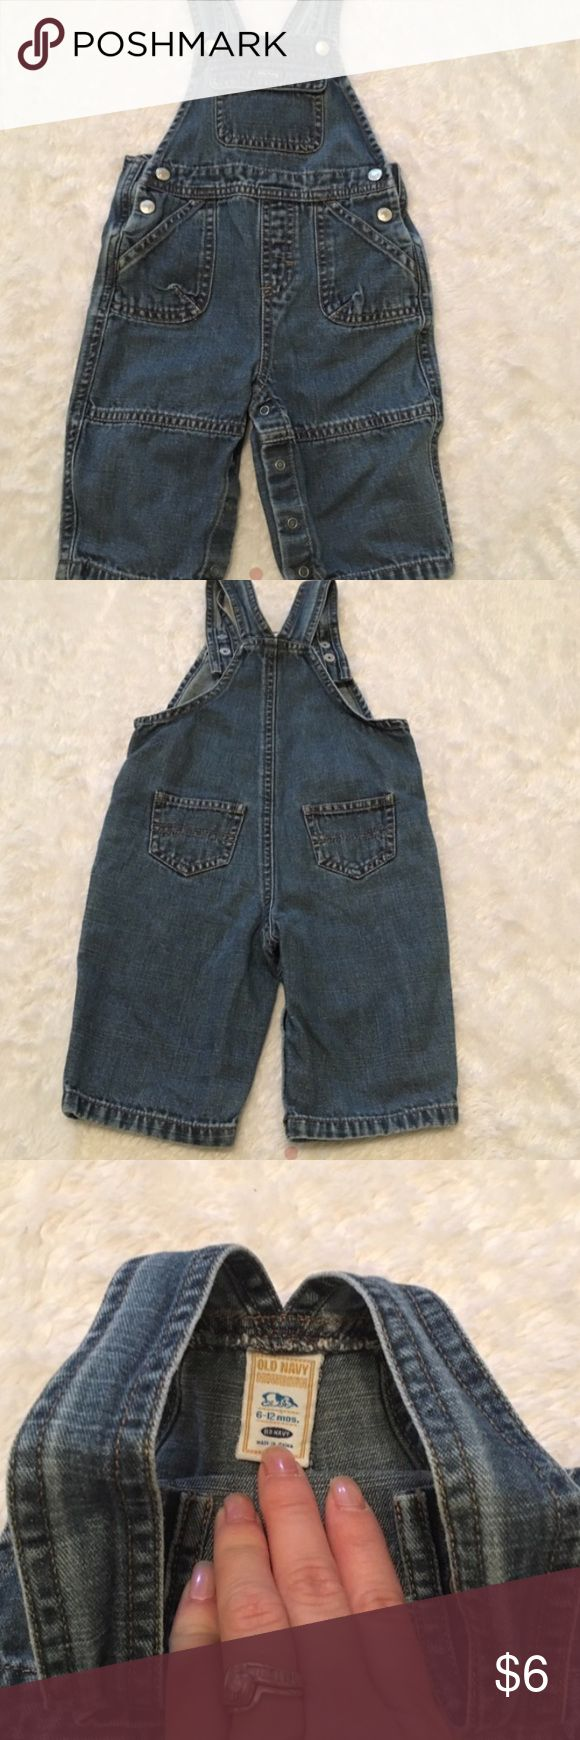 Old Navy Overalls Old Navy Overalls in excellent condition! Old Navy Bottoms Overalls